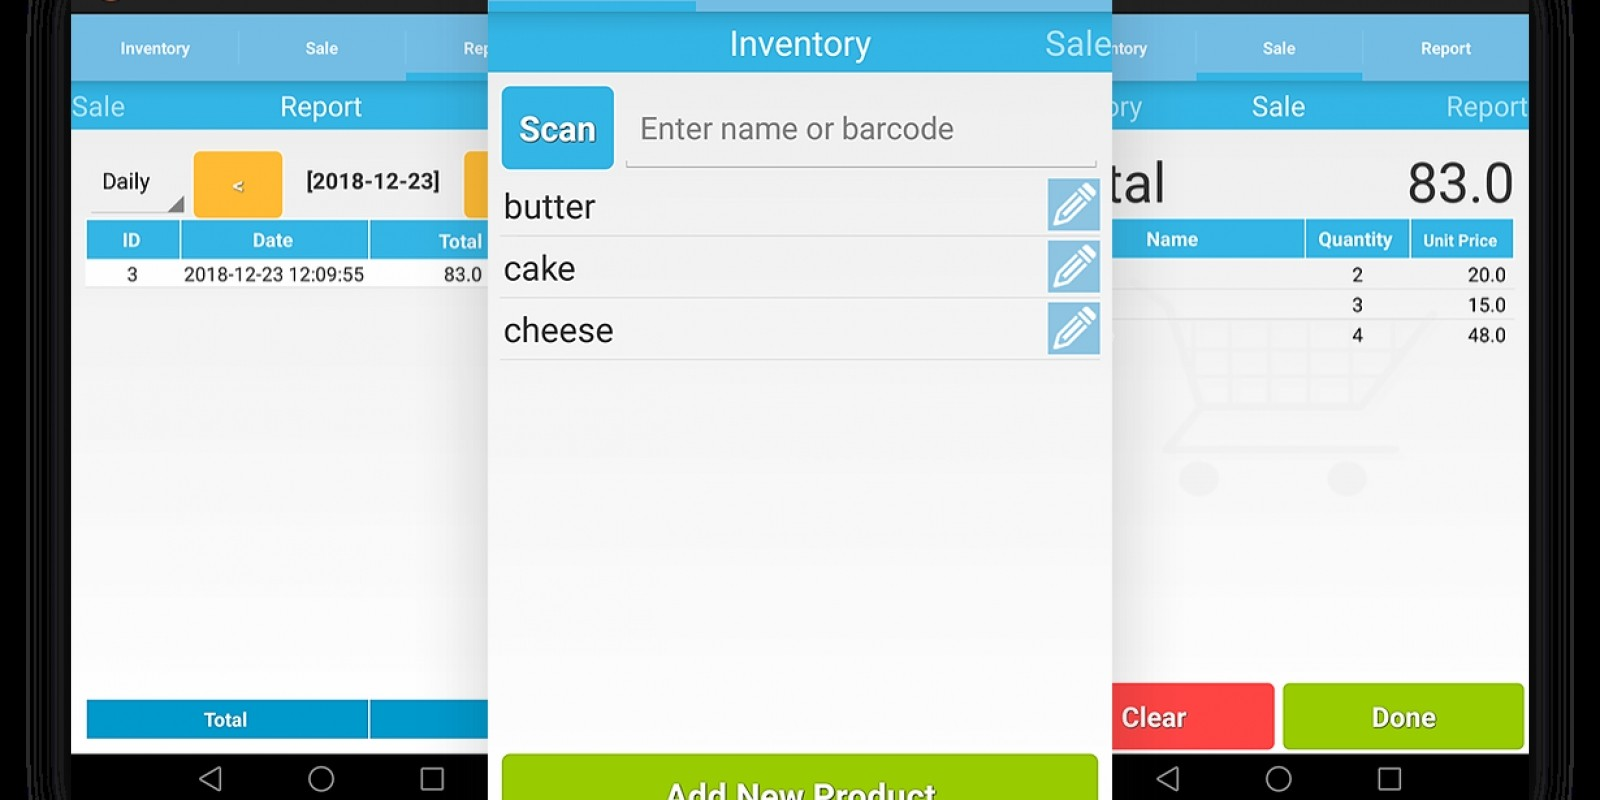 Point of Sale - Android App source code